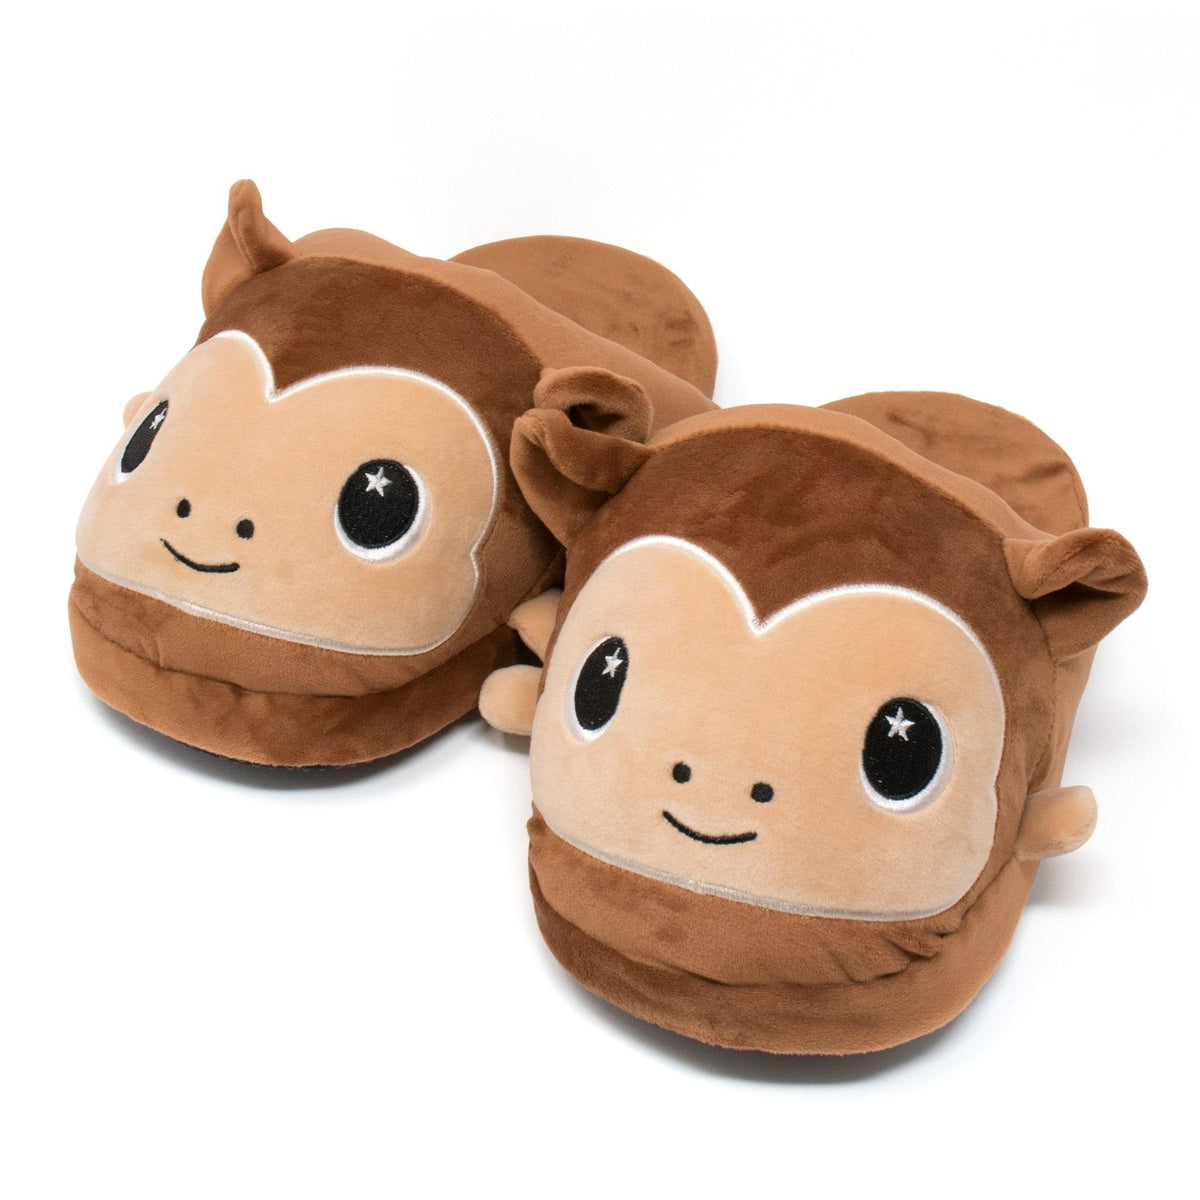 Moosh-Moosh Adult Plush Slipperz - Brown Chunky Monkey